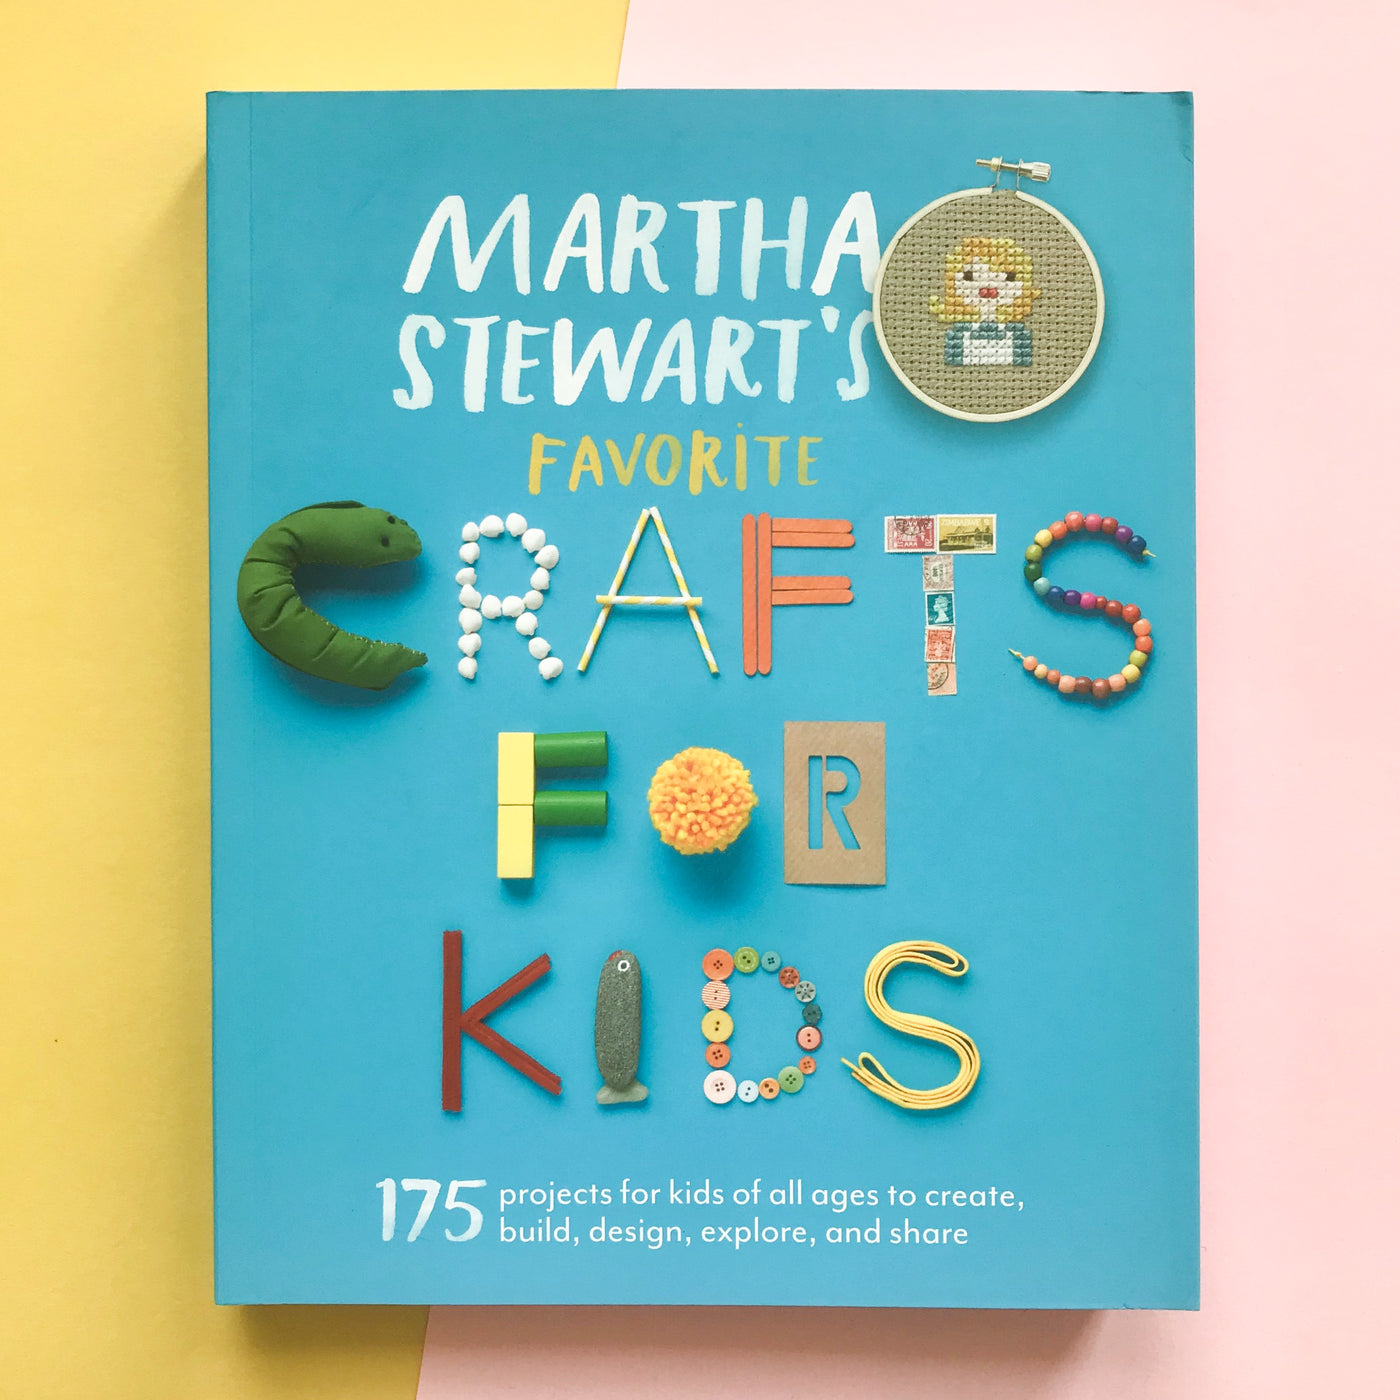 Martha Stewart's Favorite Crafts for Kids Book 175 Projects for kids of all ages